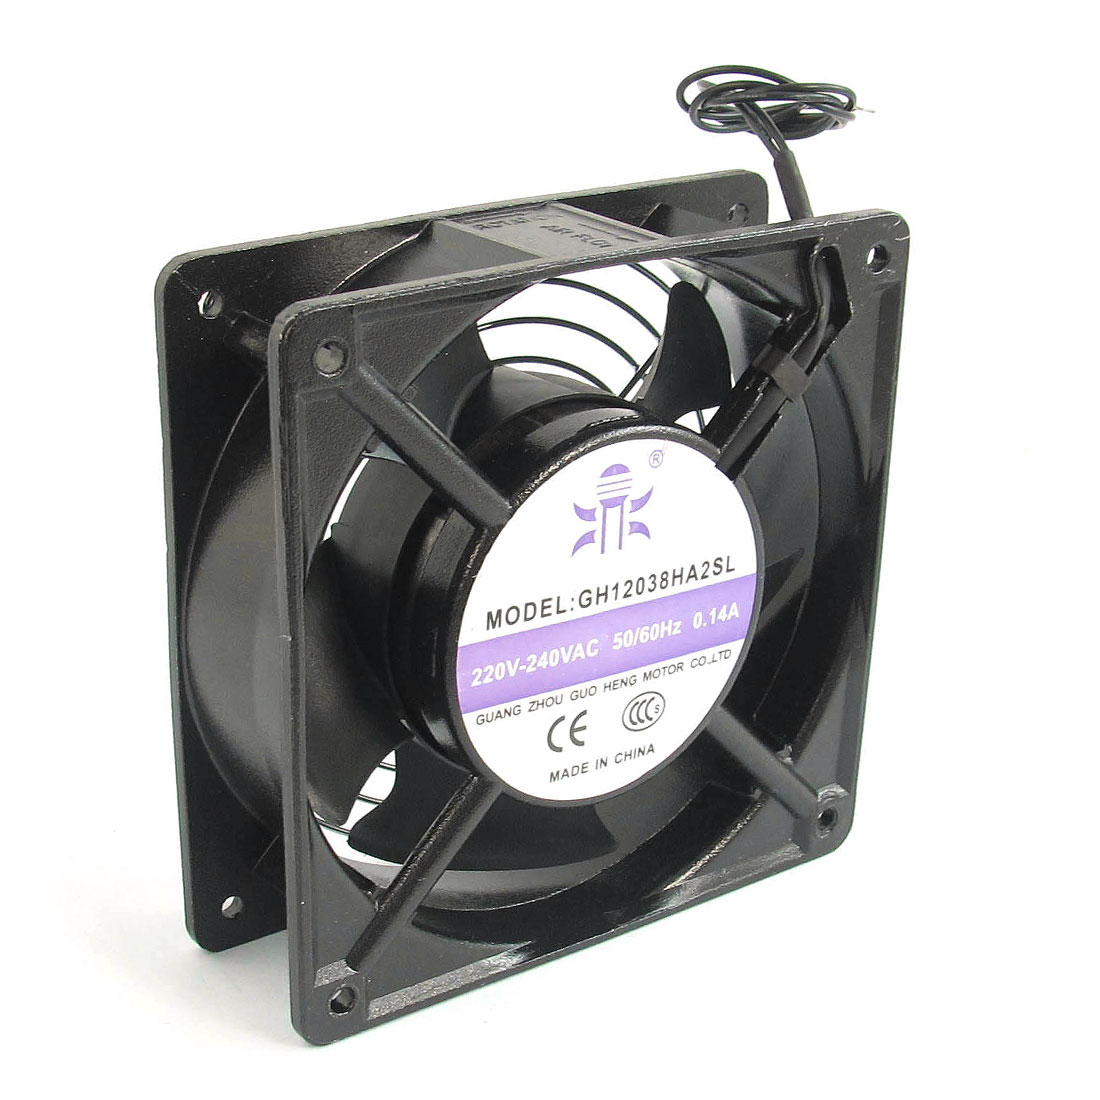 AC220V-240V 0.14A 2 Wired Black Metal 5 Flabellums Axial Cooling Fan Cooler Radiator Heat Sink w Cover